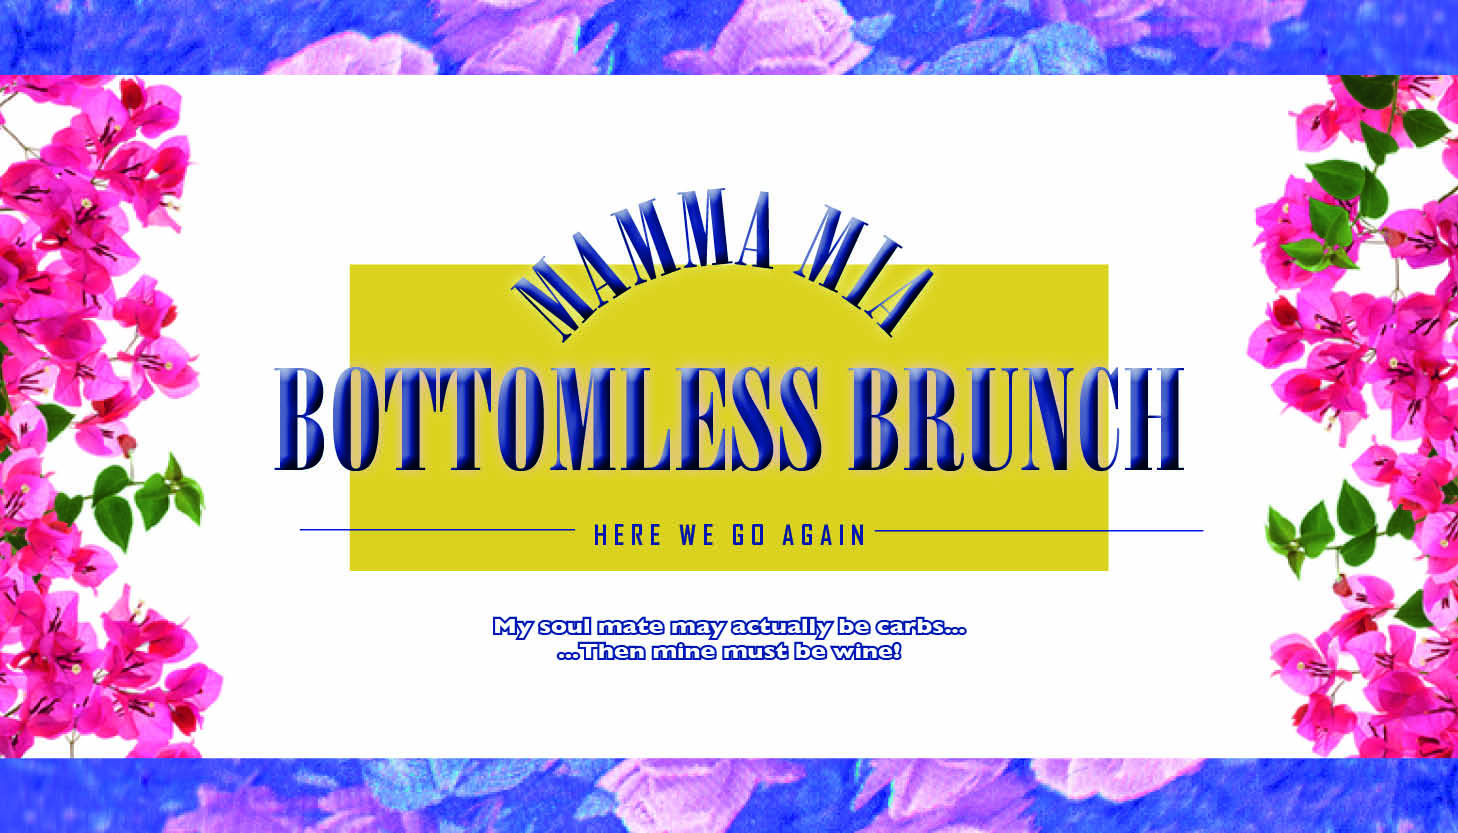 Mamma Mia Bottomless Brunch